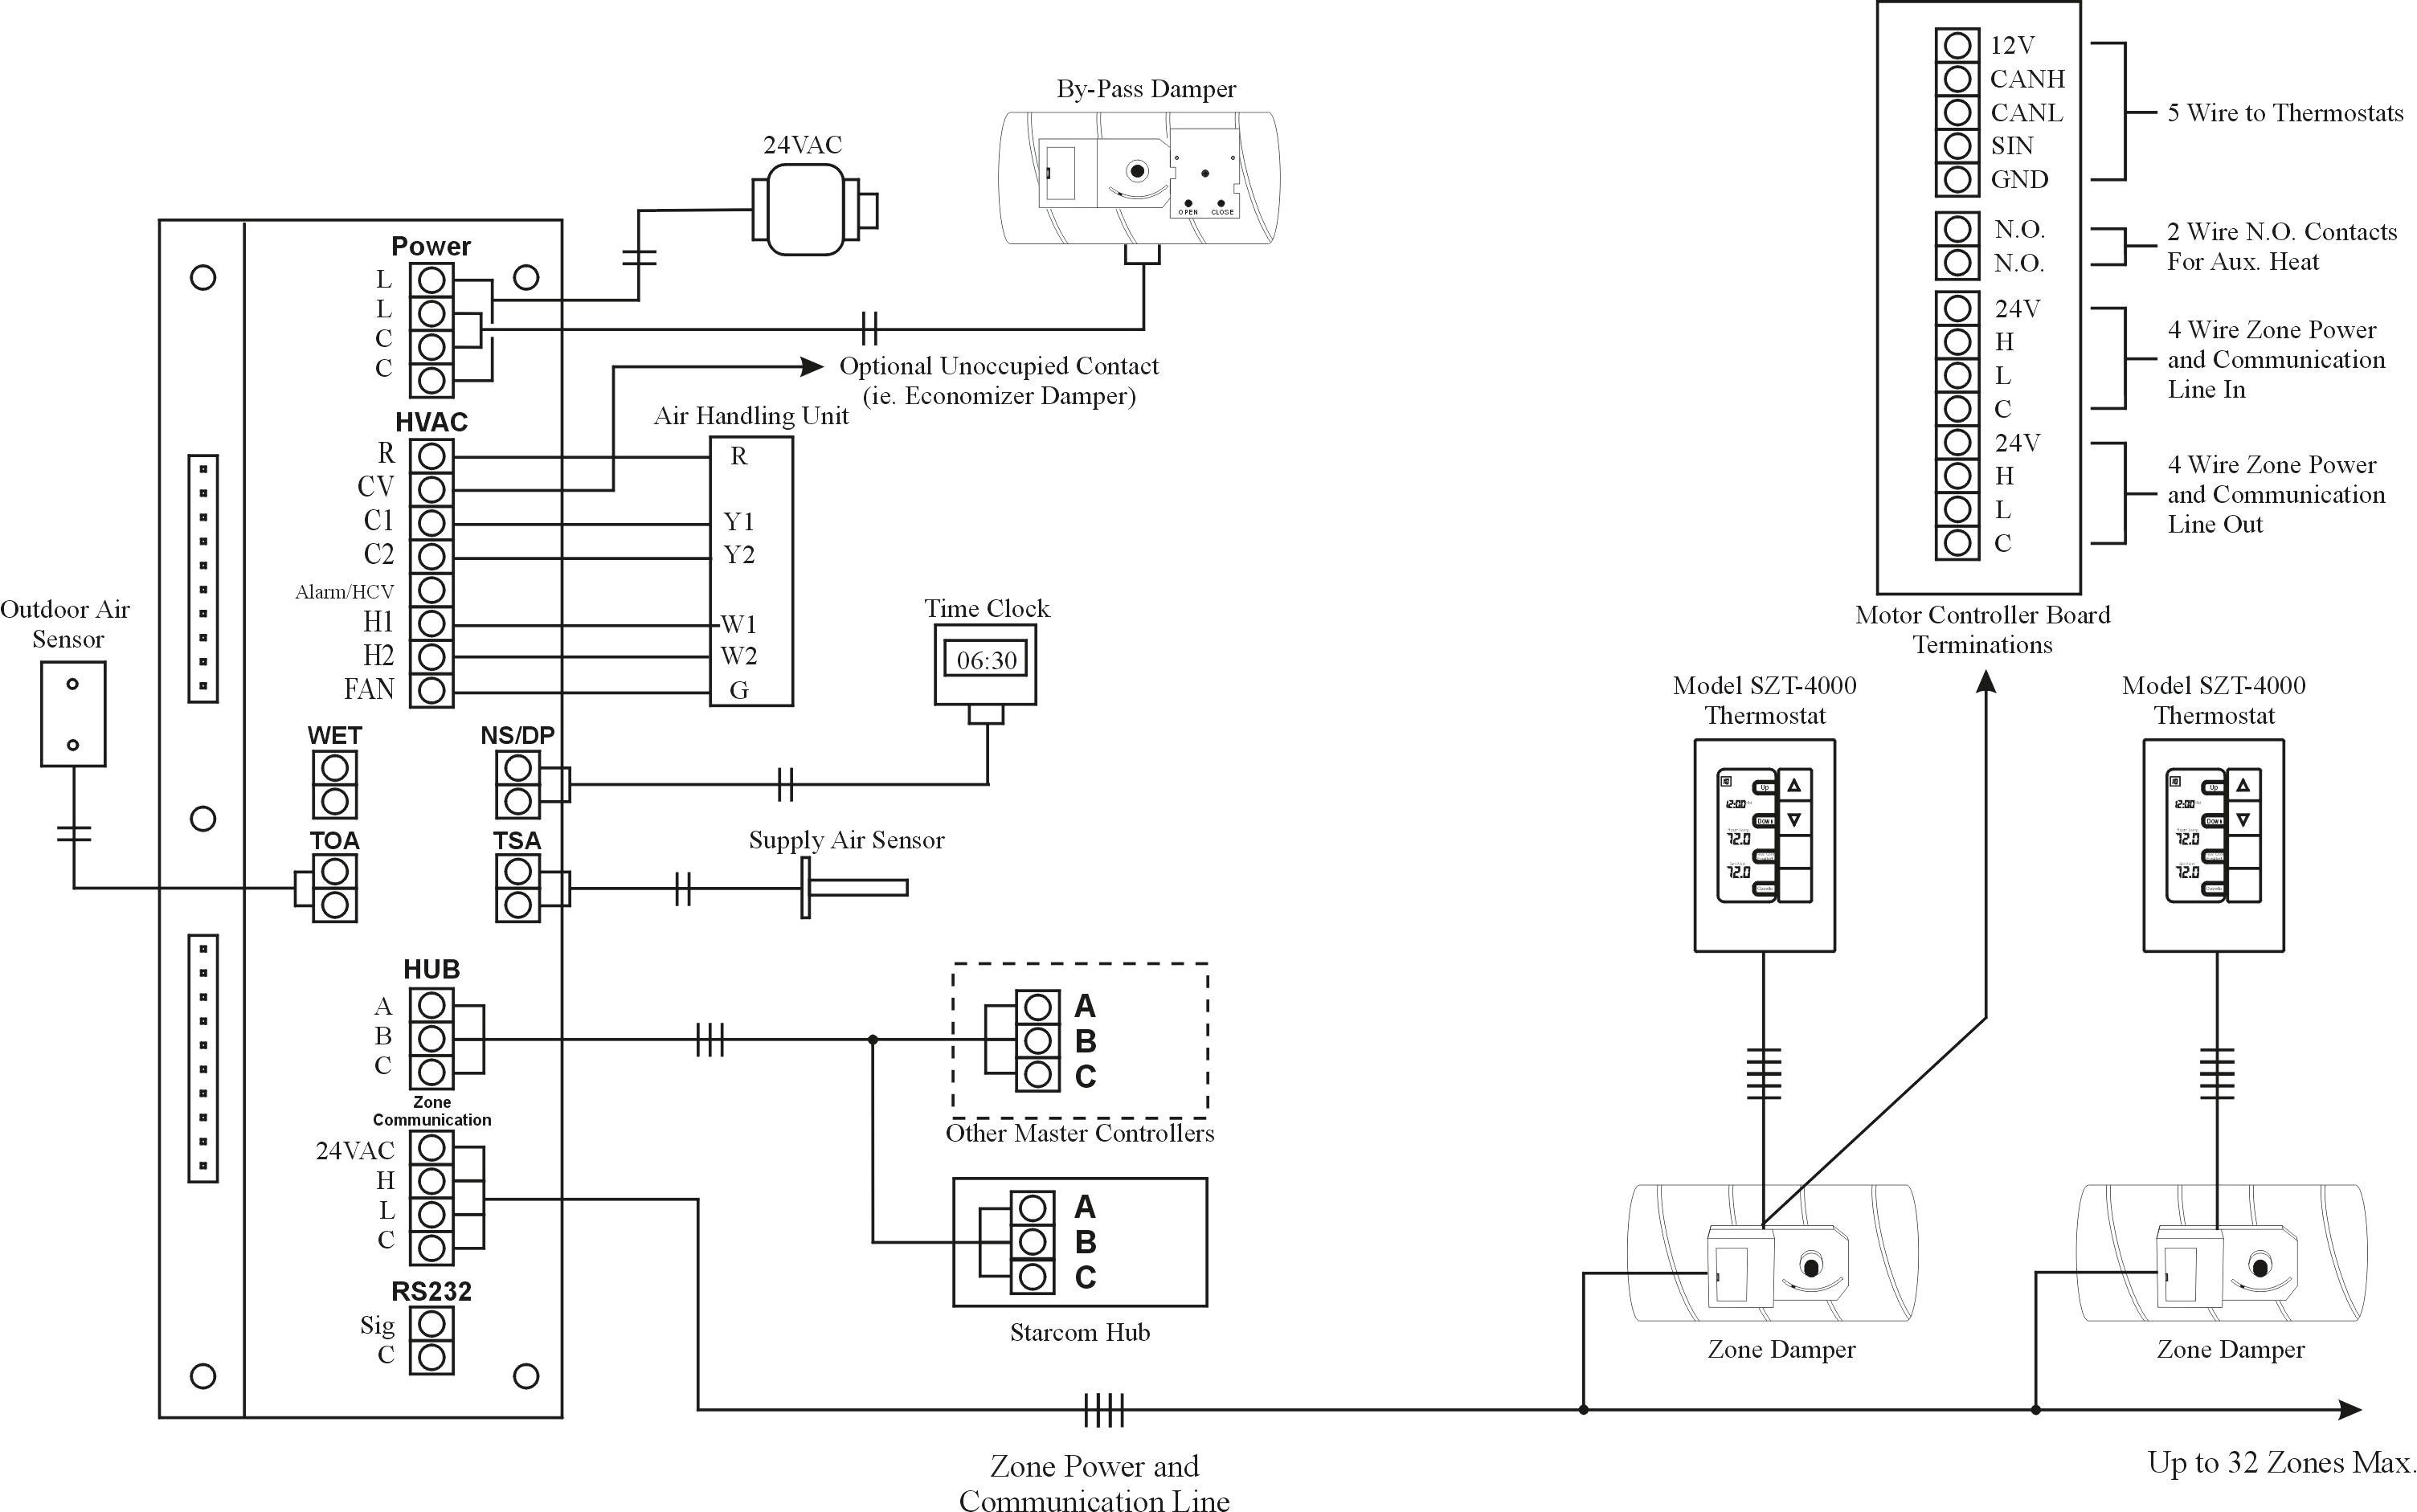 Goodman Heat Pump Wiring Diagram